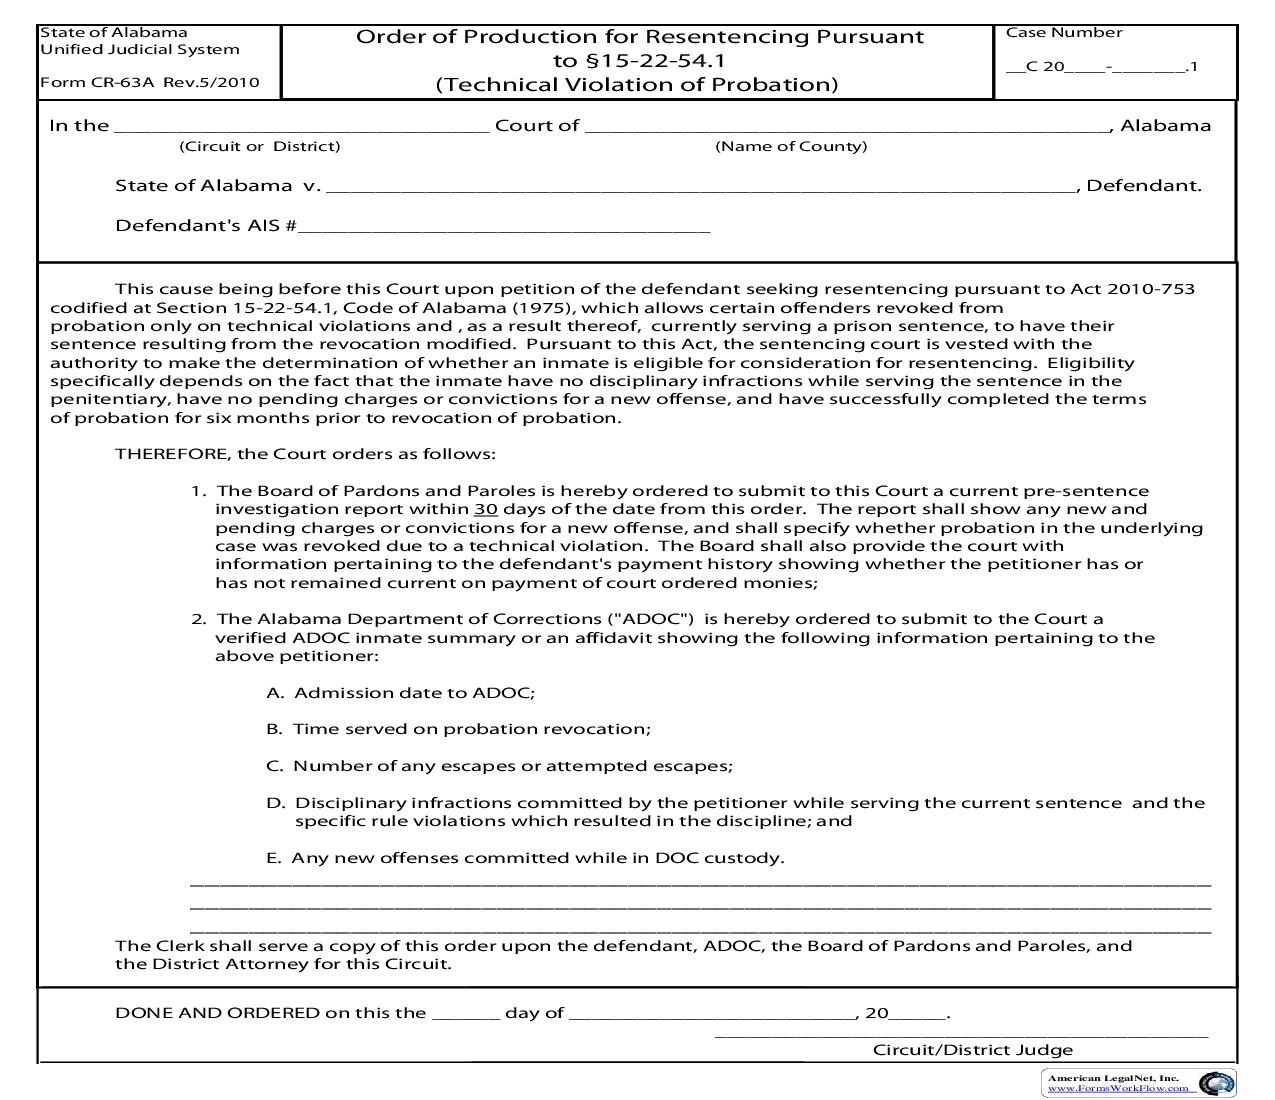 Order Of Production For Resentencing PursuantTo 15-22-54.1 {CR-63A} | Pdf Fpdf Doc Docx | Alabama